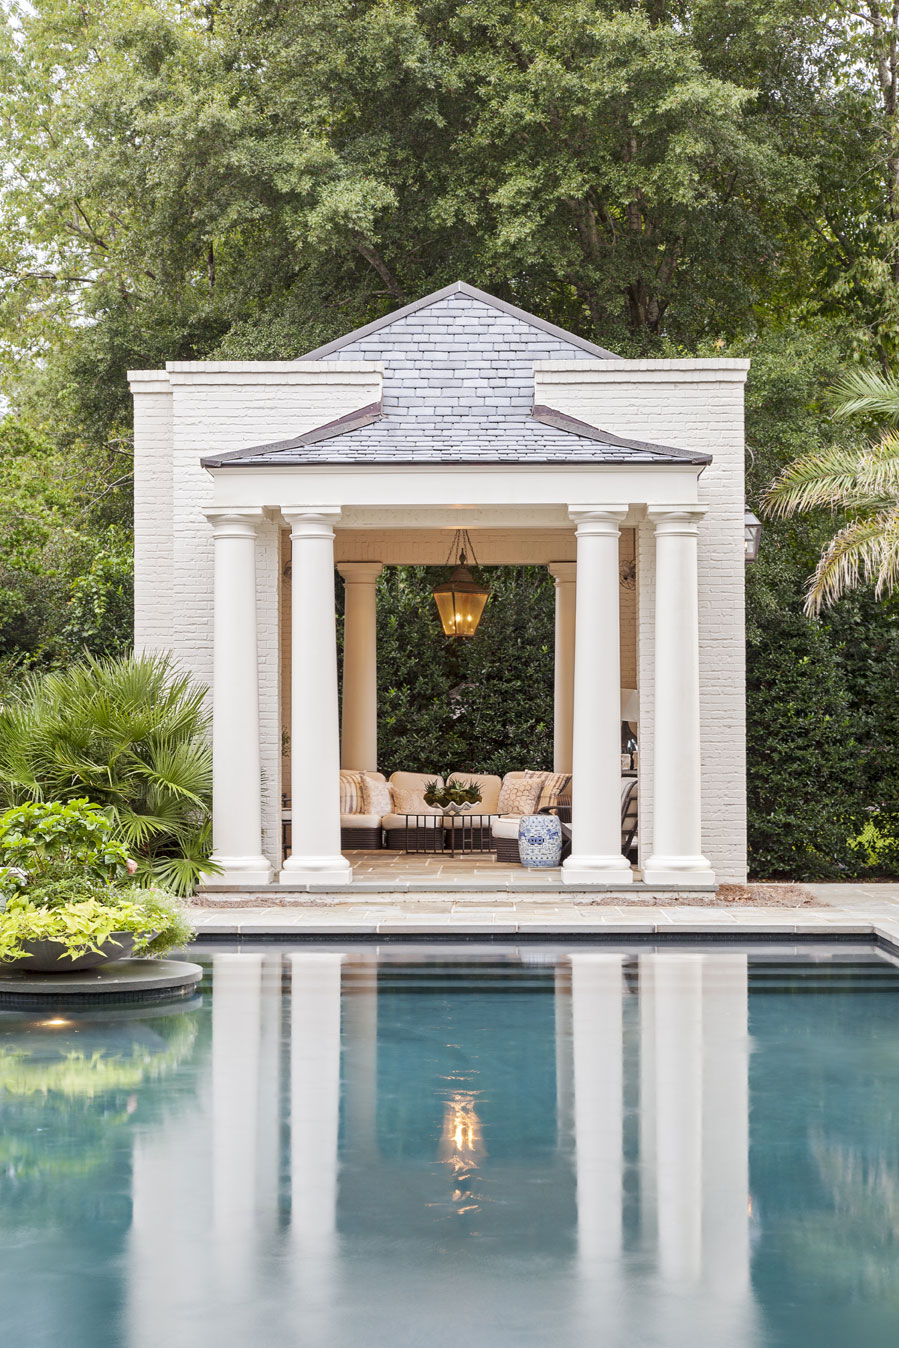 CABANA COOL: Elevated pool cabanas provide shade and a place to relax (top). A landscaped brick wall acts as a privacy screen as the Hastings boys face off in the pool for a game of chicken.